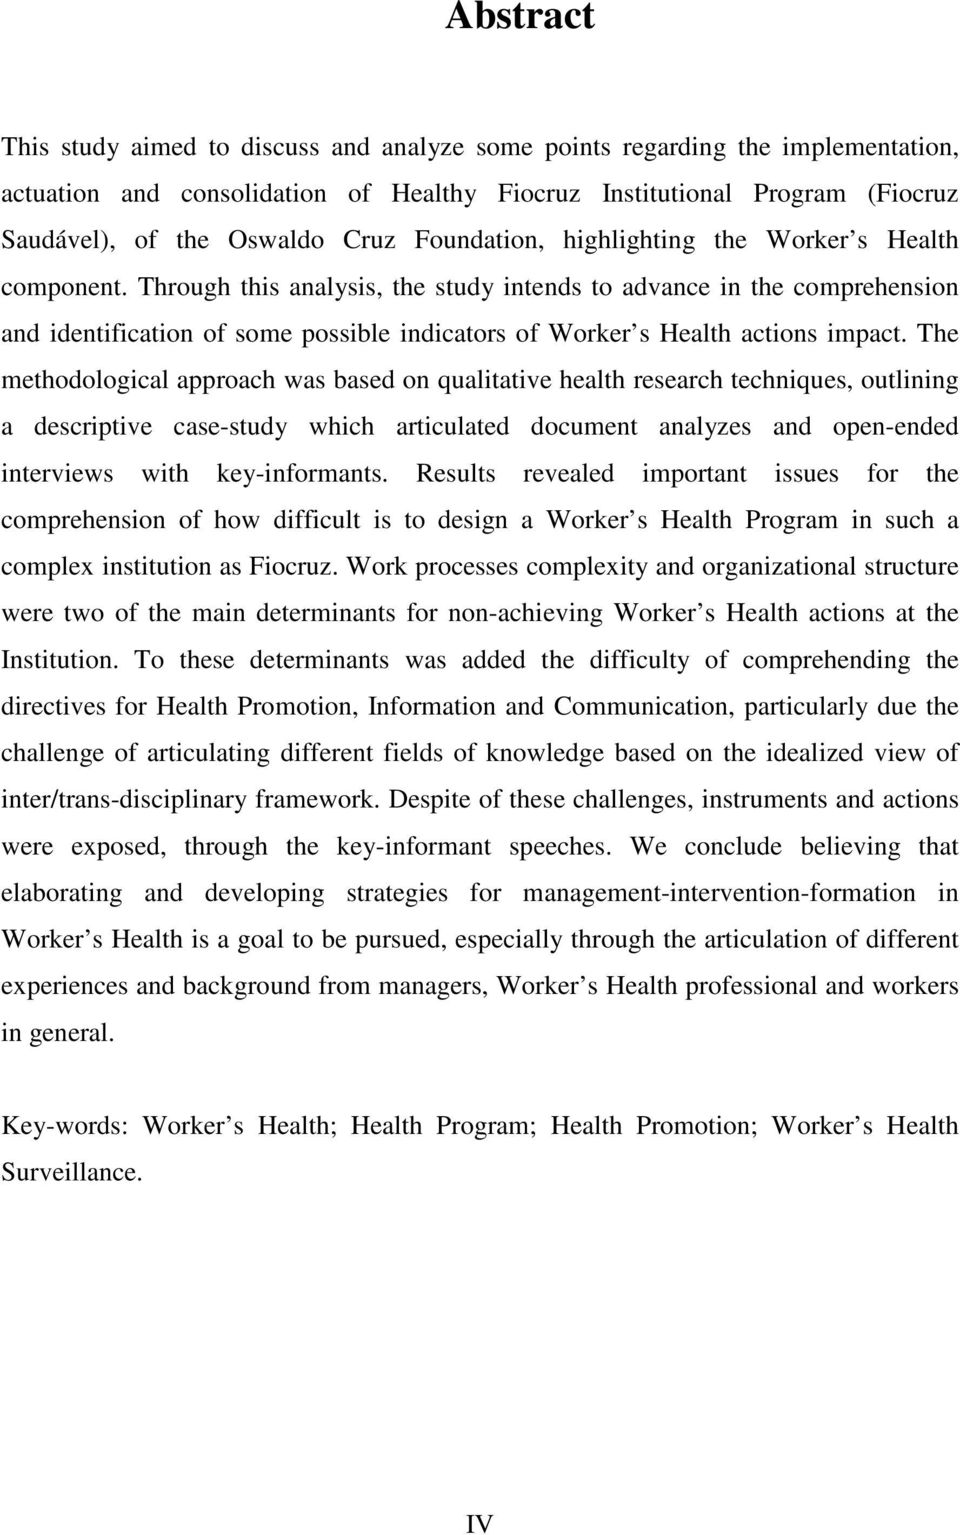 Through this analysis, the study intends to advance in the comprehension and identification of some possible indicators of Worker s Health actions impact.